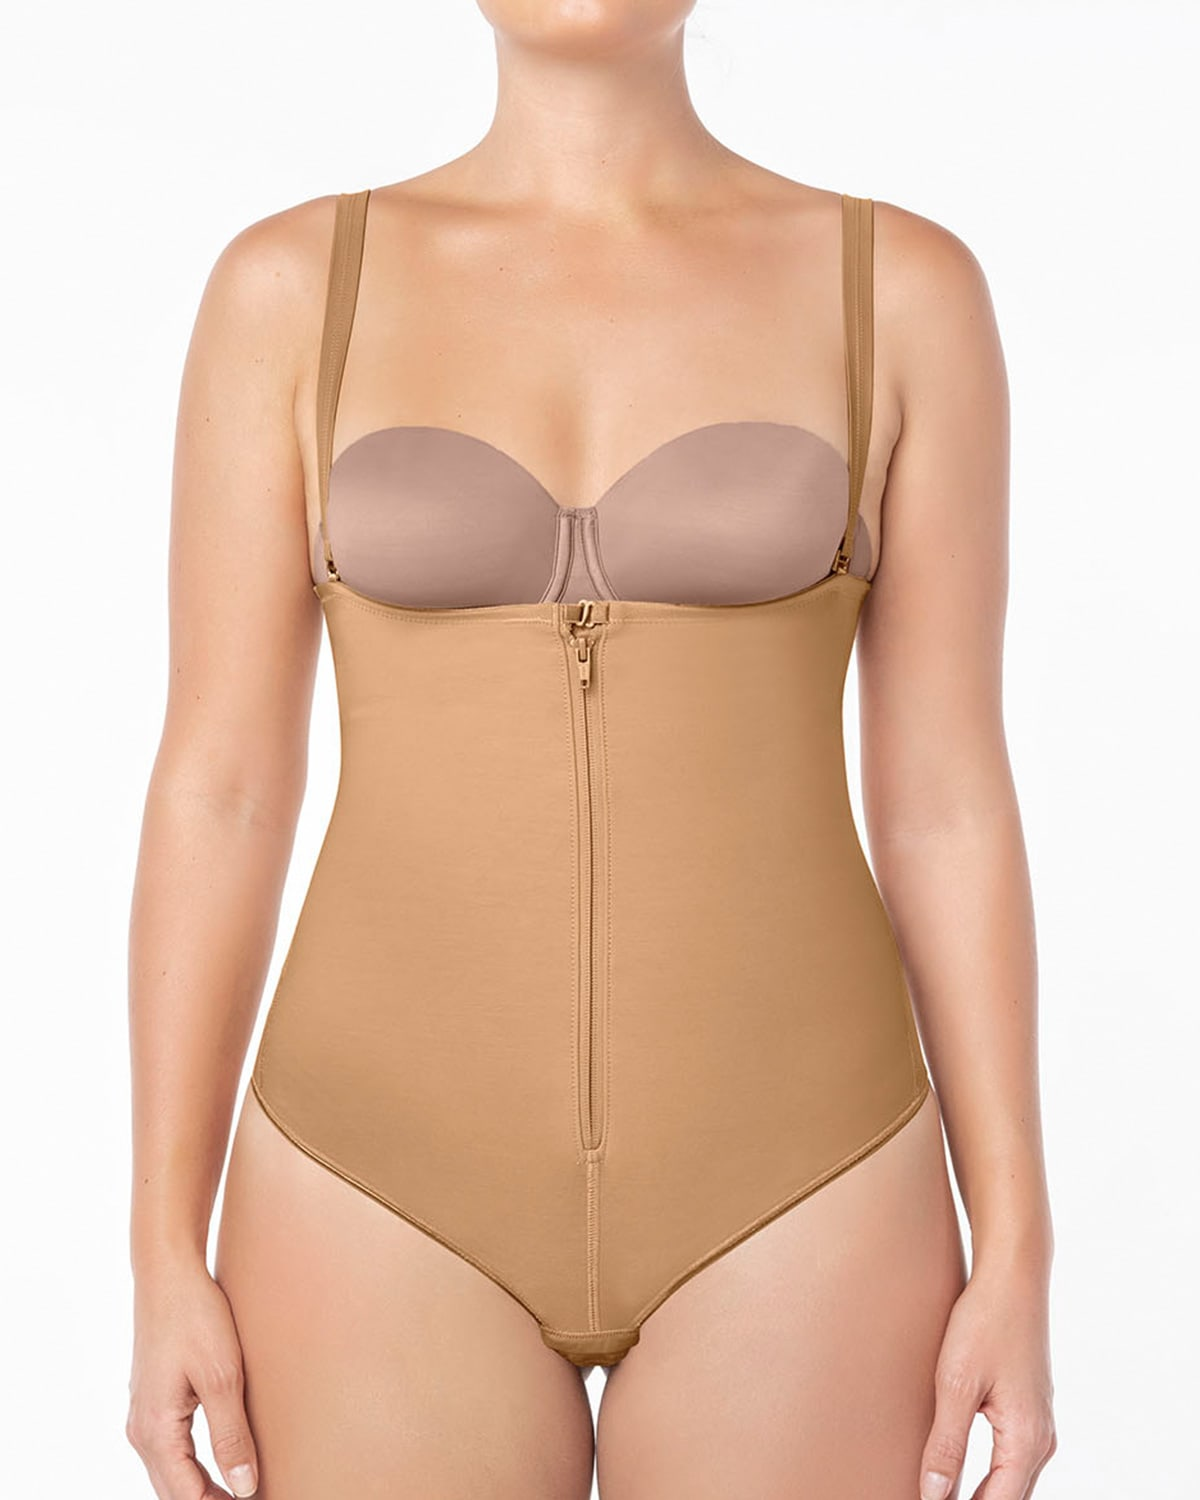 04a9a89d8e3 Strapless Body Shaper with Thong